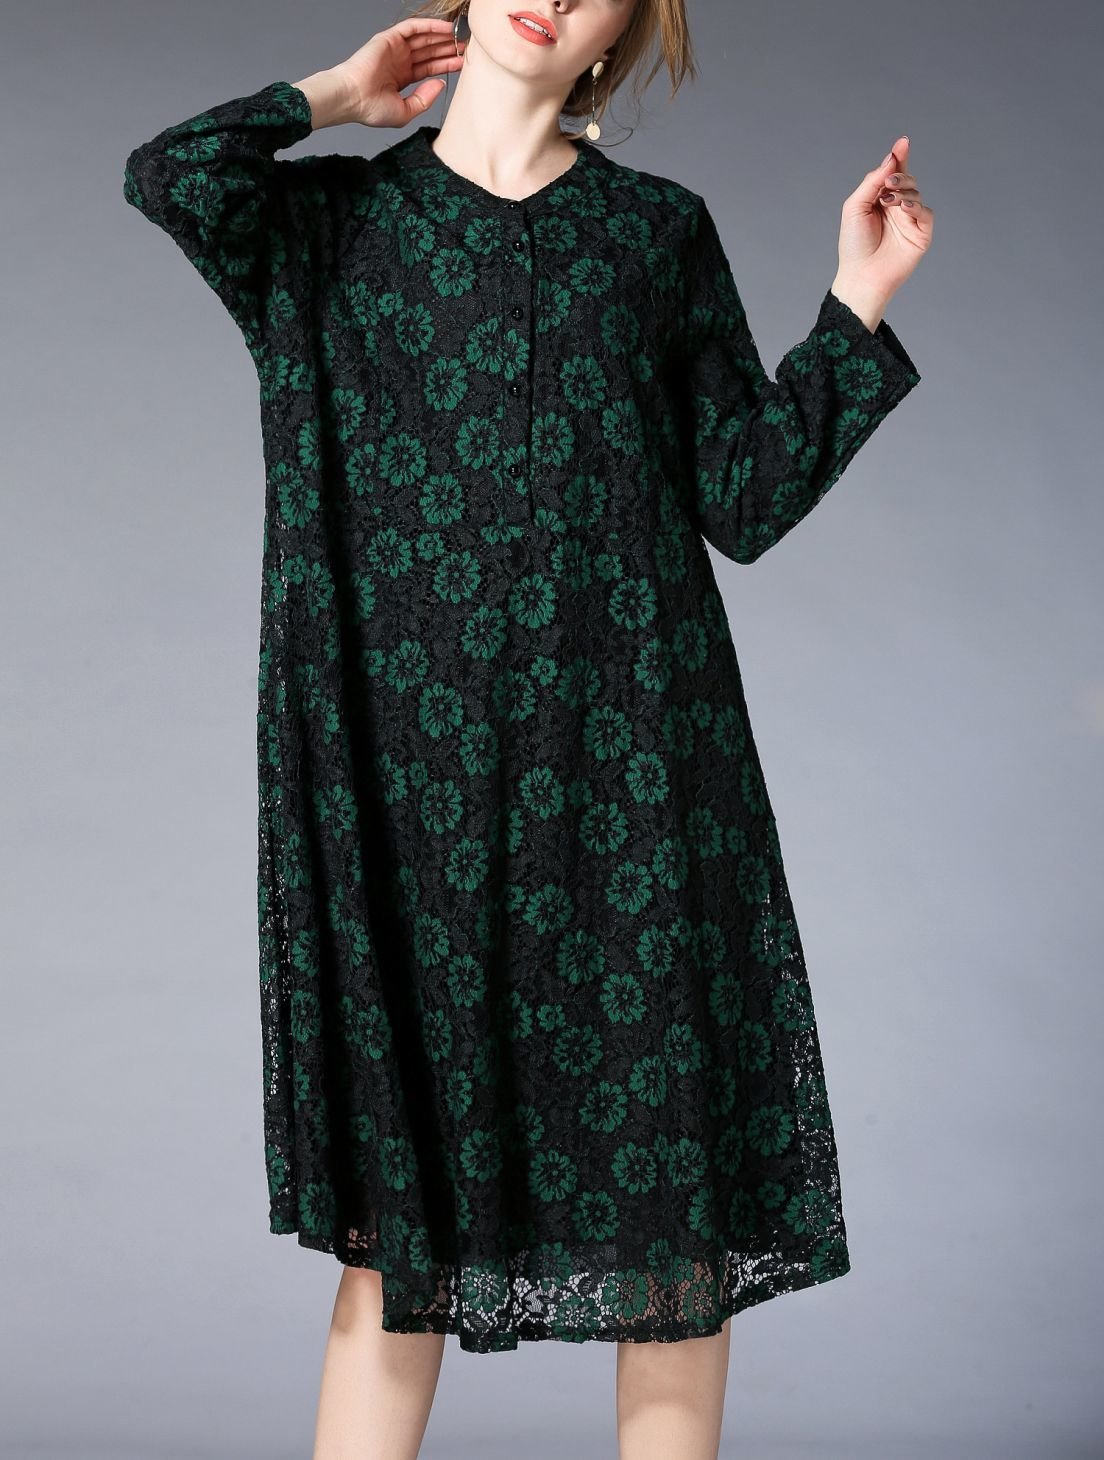 Plus Size Dress for Work in Lace Fabric